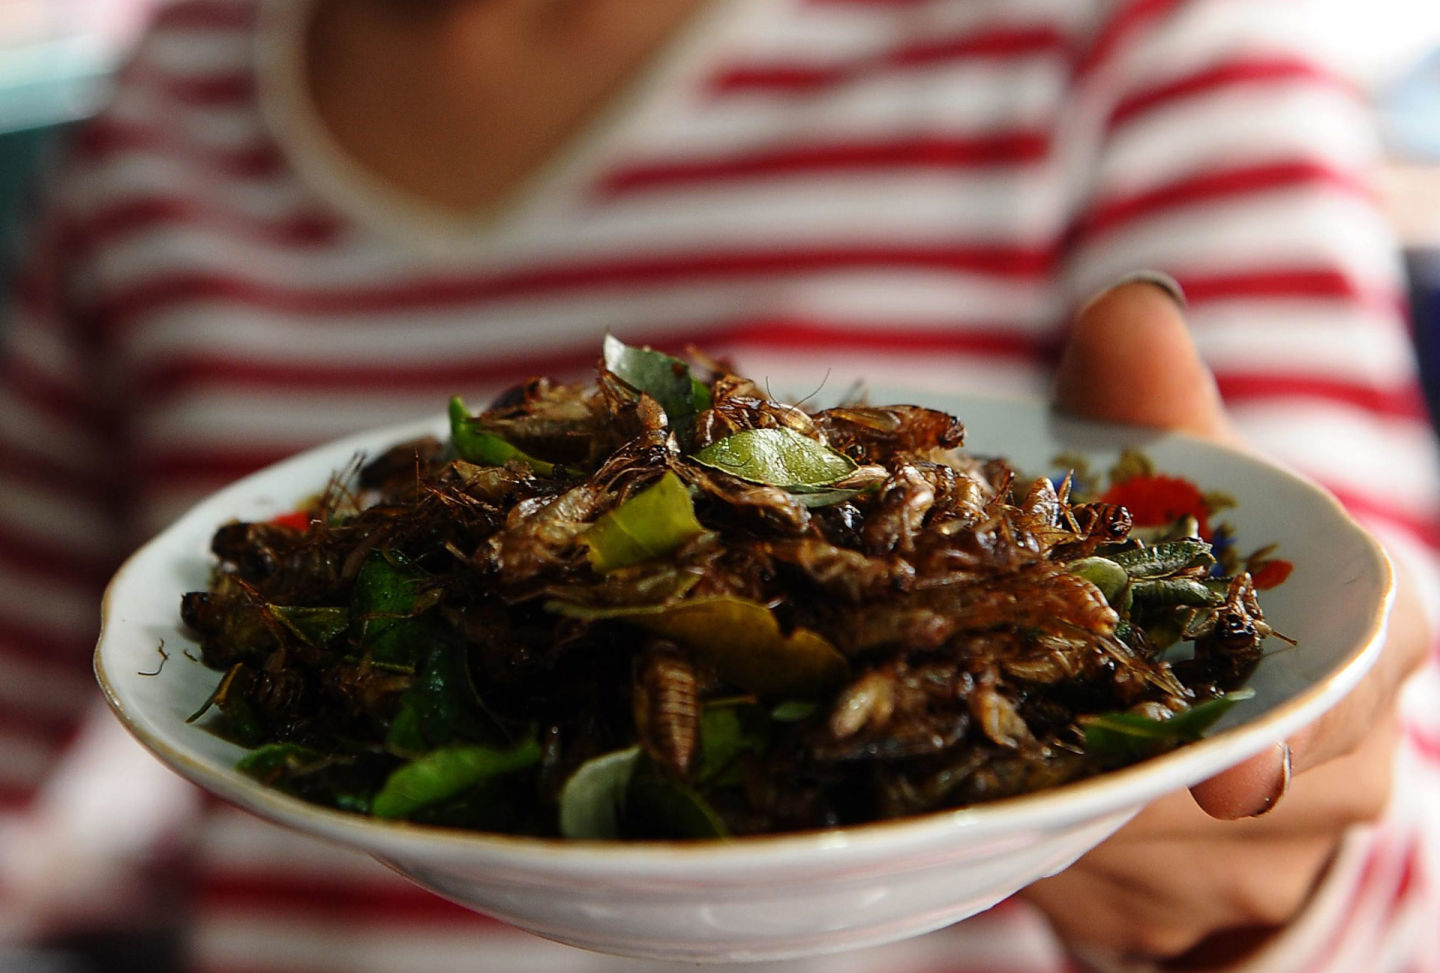 A vendor holds a plate of fried crickets in Laos.